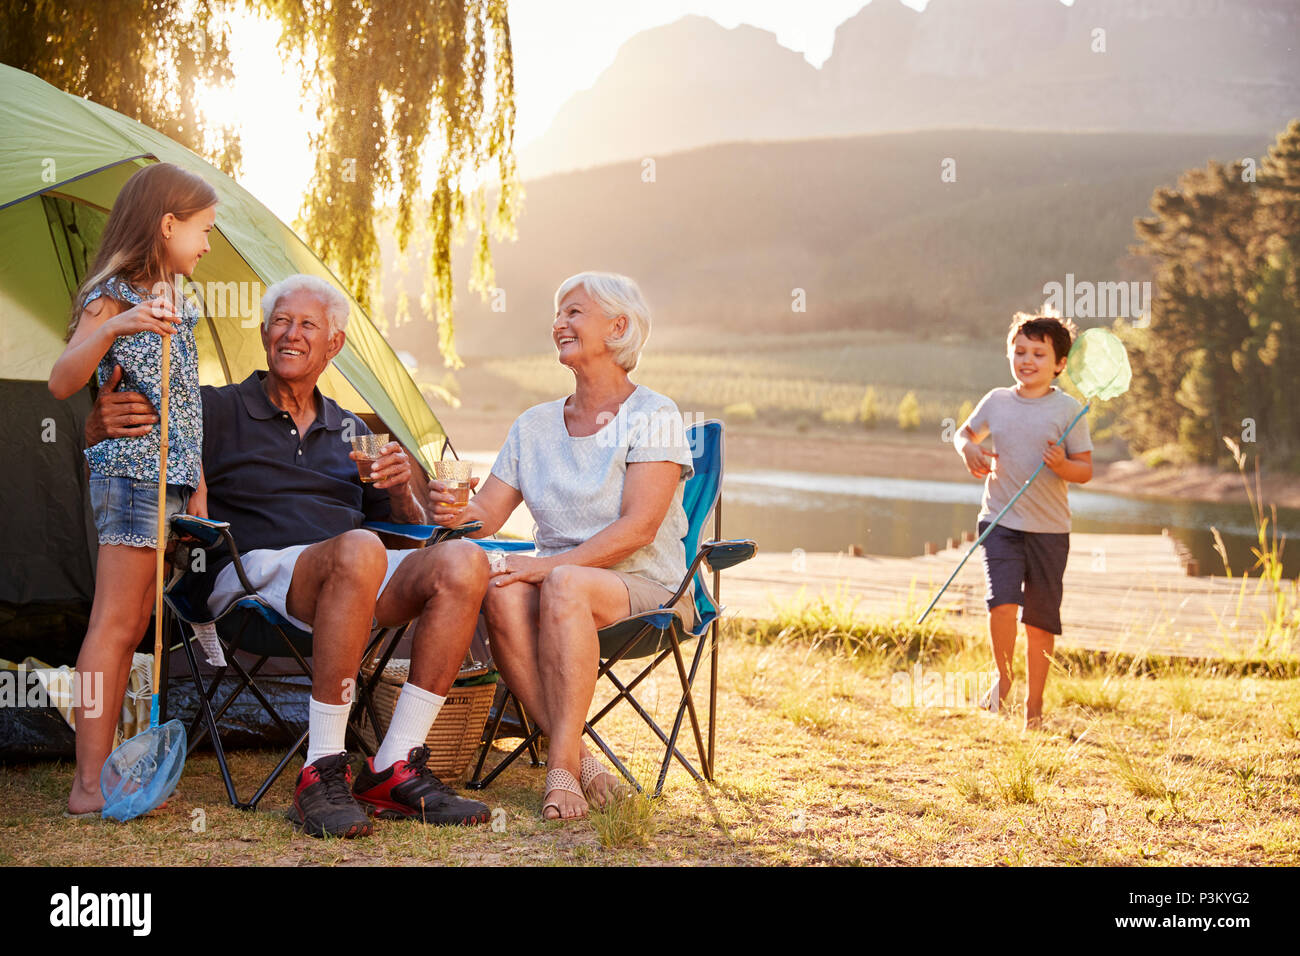 Grandchildren With Grandparents On Camping Holiday By Lake - Stock Image